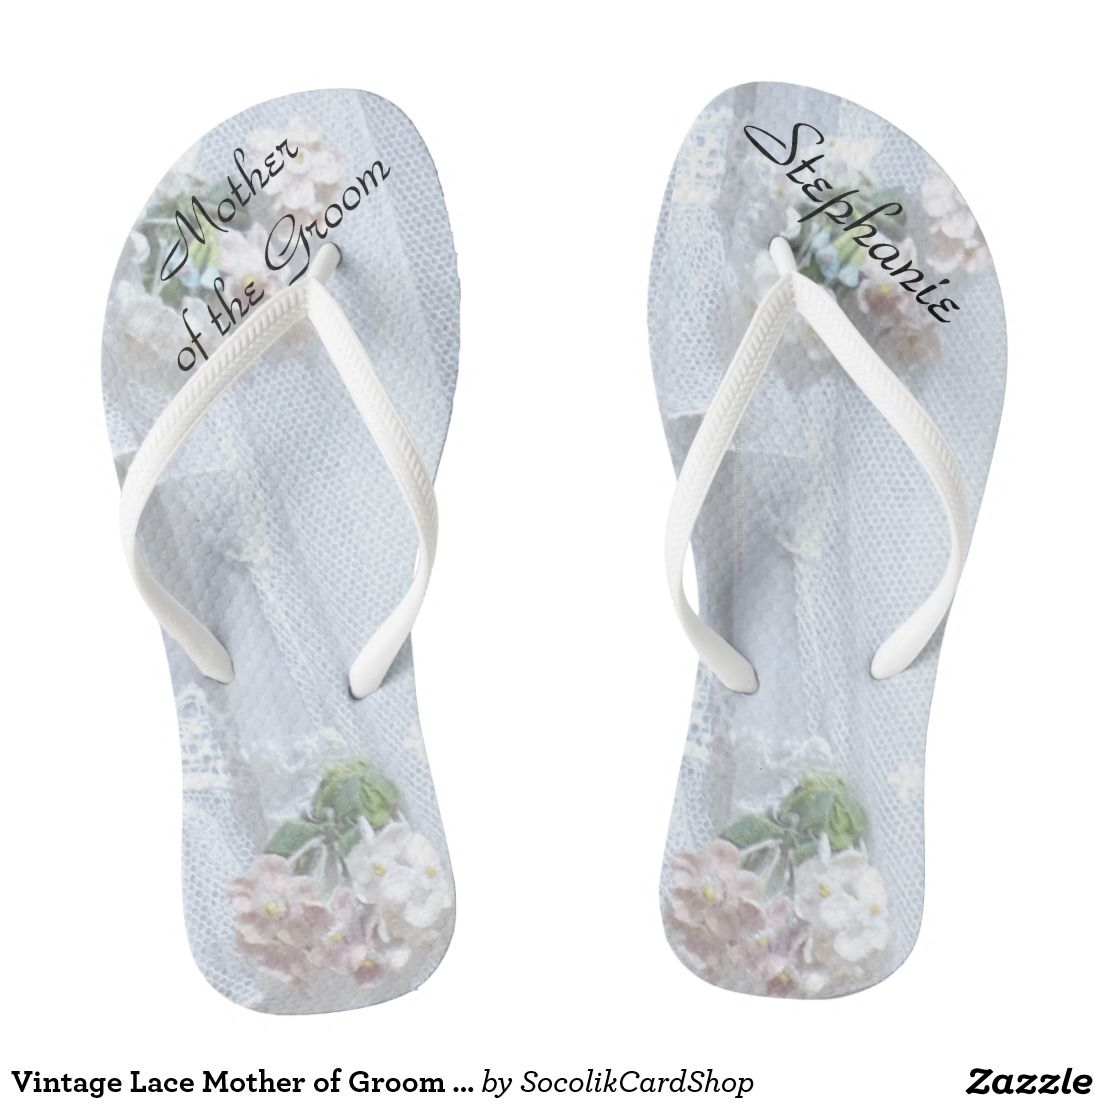 e3014643f1cf Vintage Lace Mother of Groom Wedding Flip Flops This Vintage Lace design  personalized